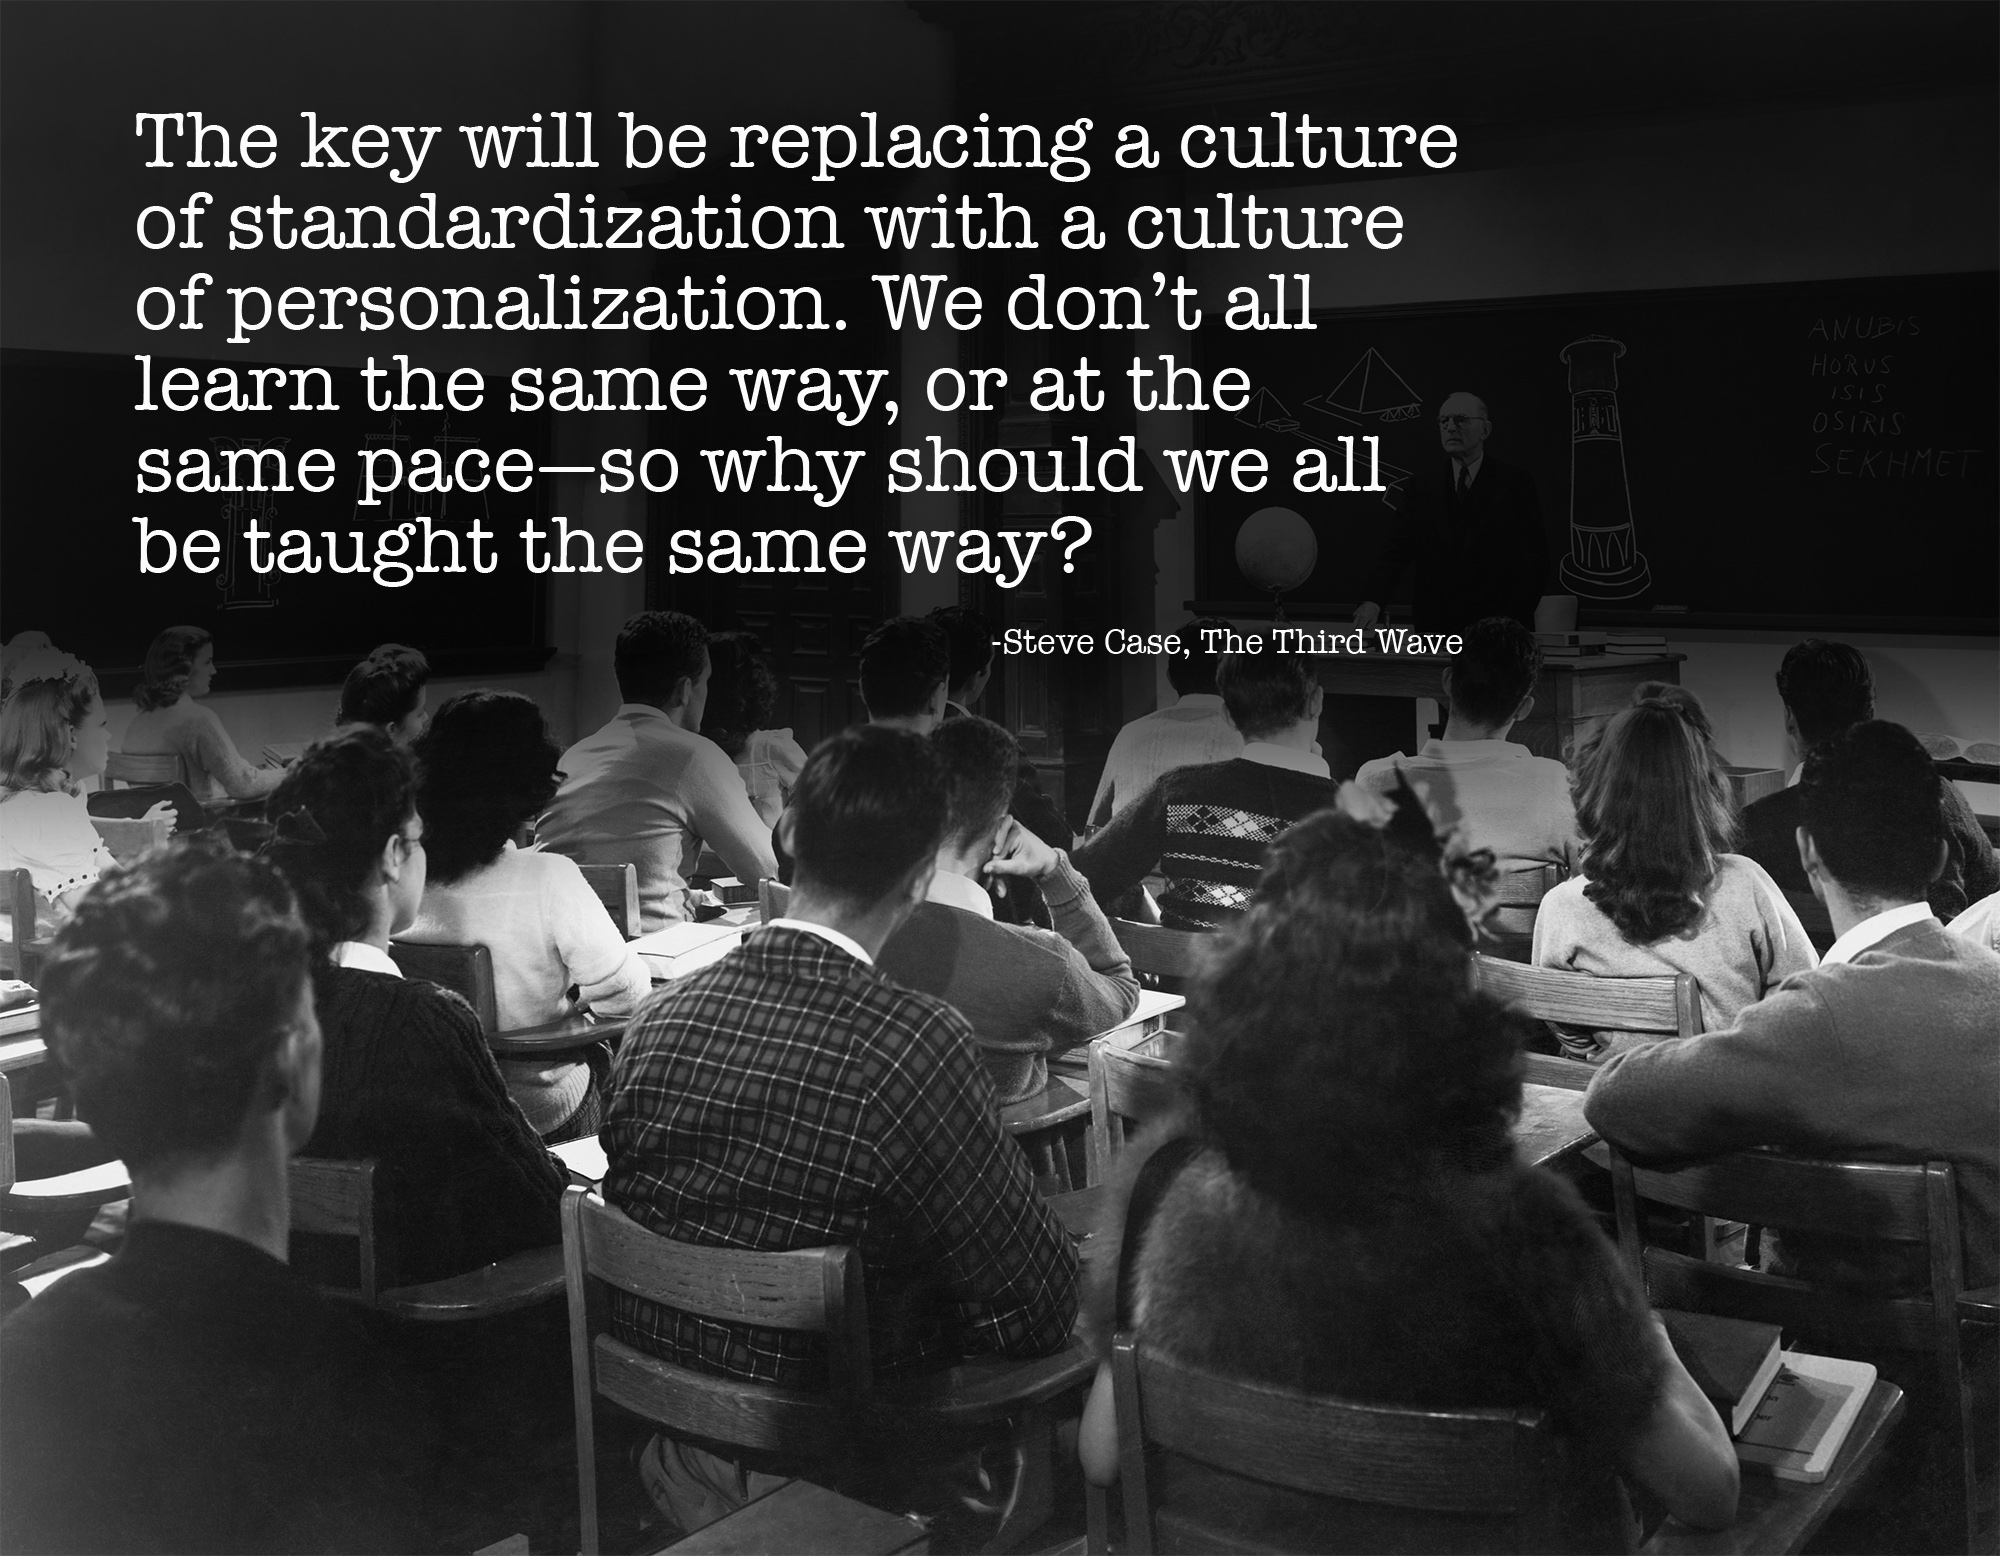 The-key-will-be-replacing-a-culture-of-standardization-with-a-culture-of-personalization